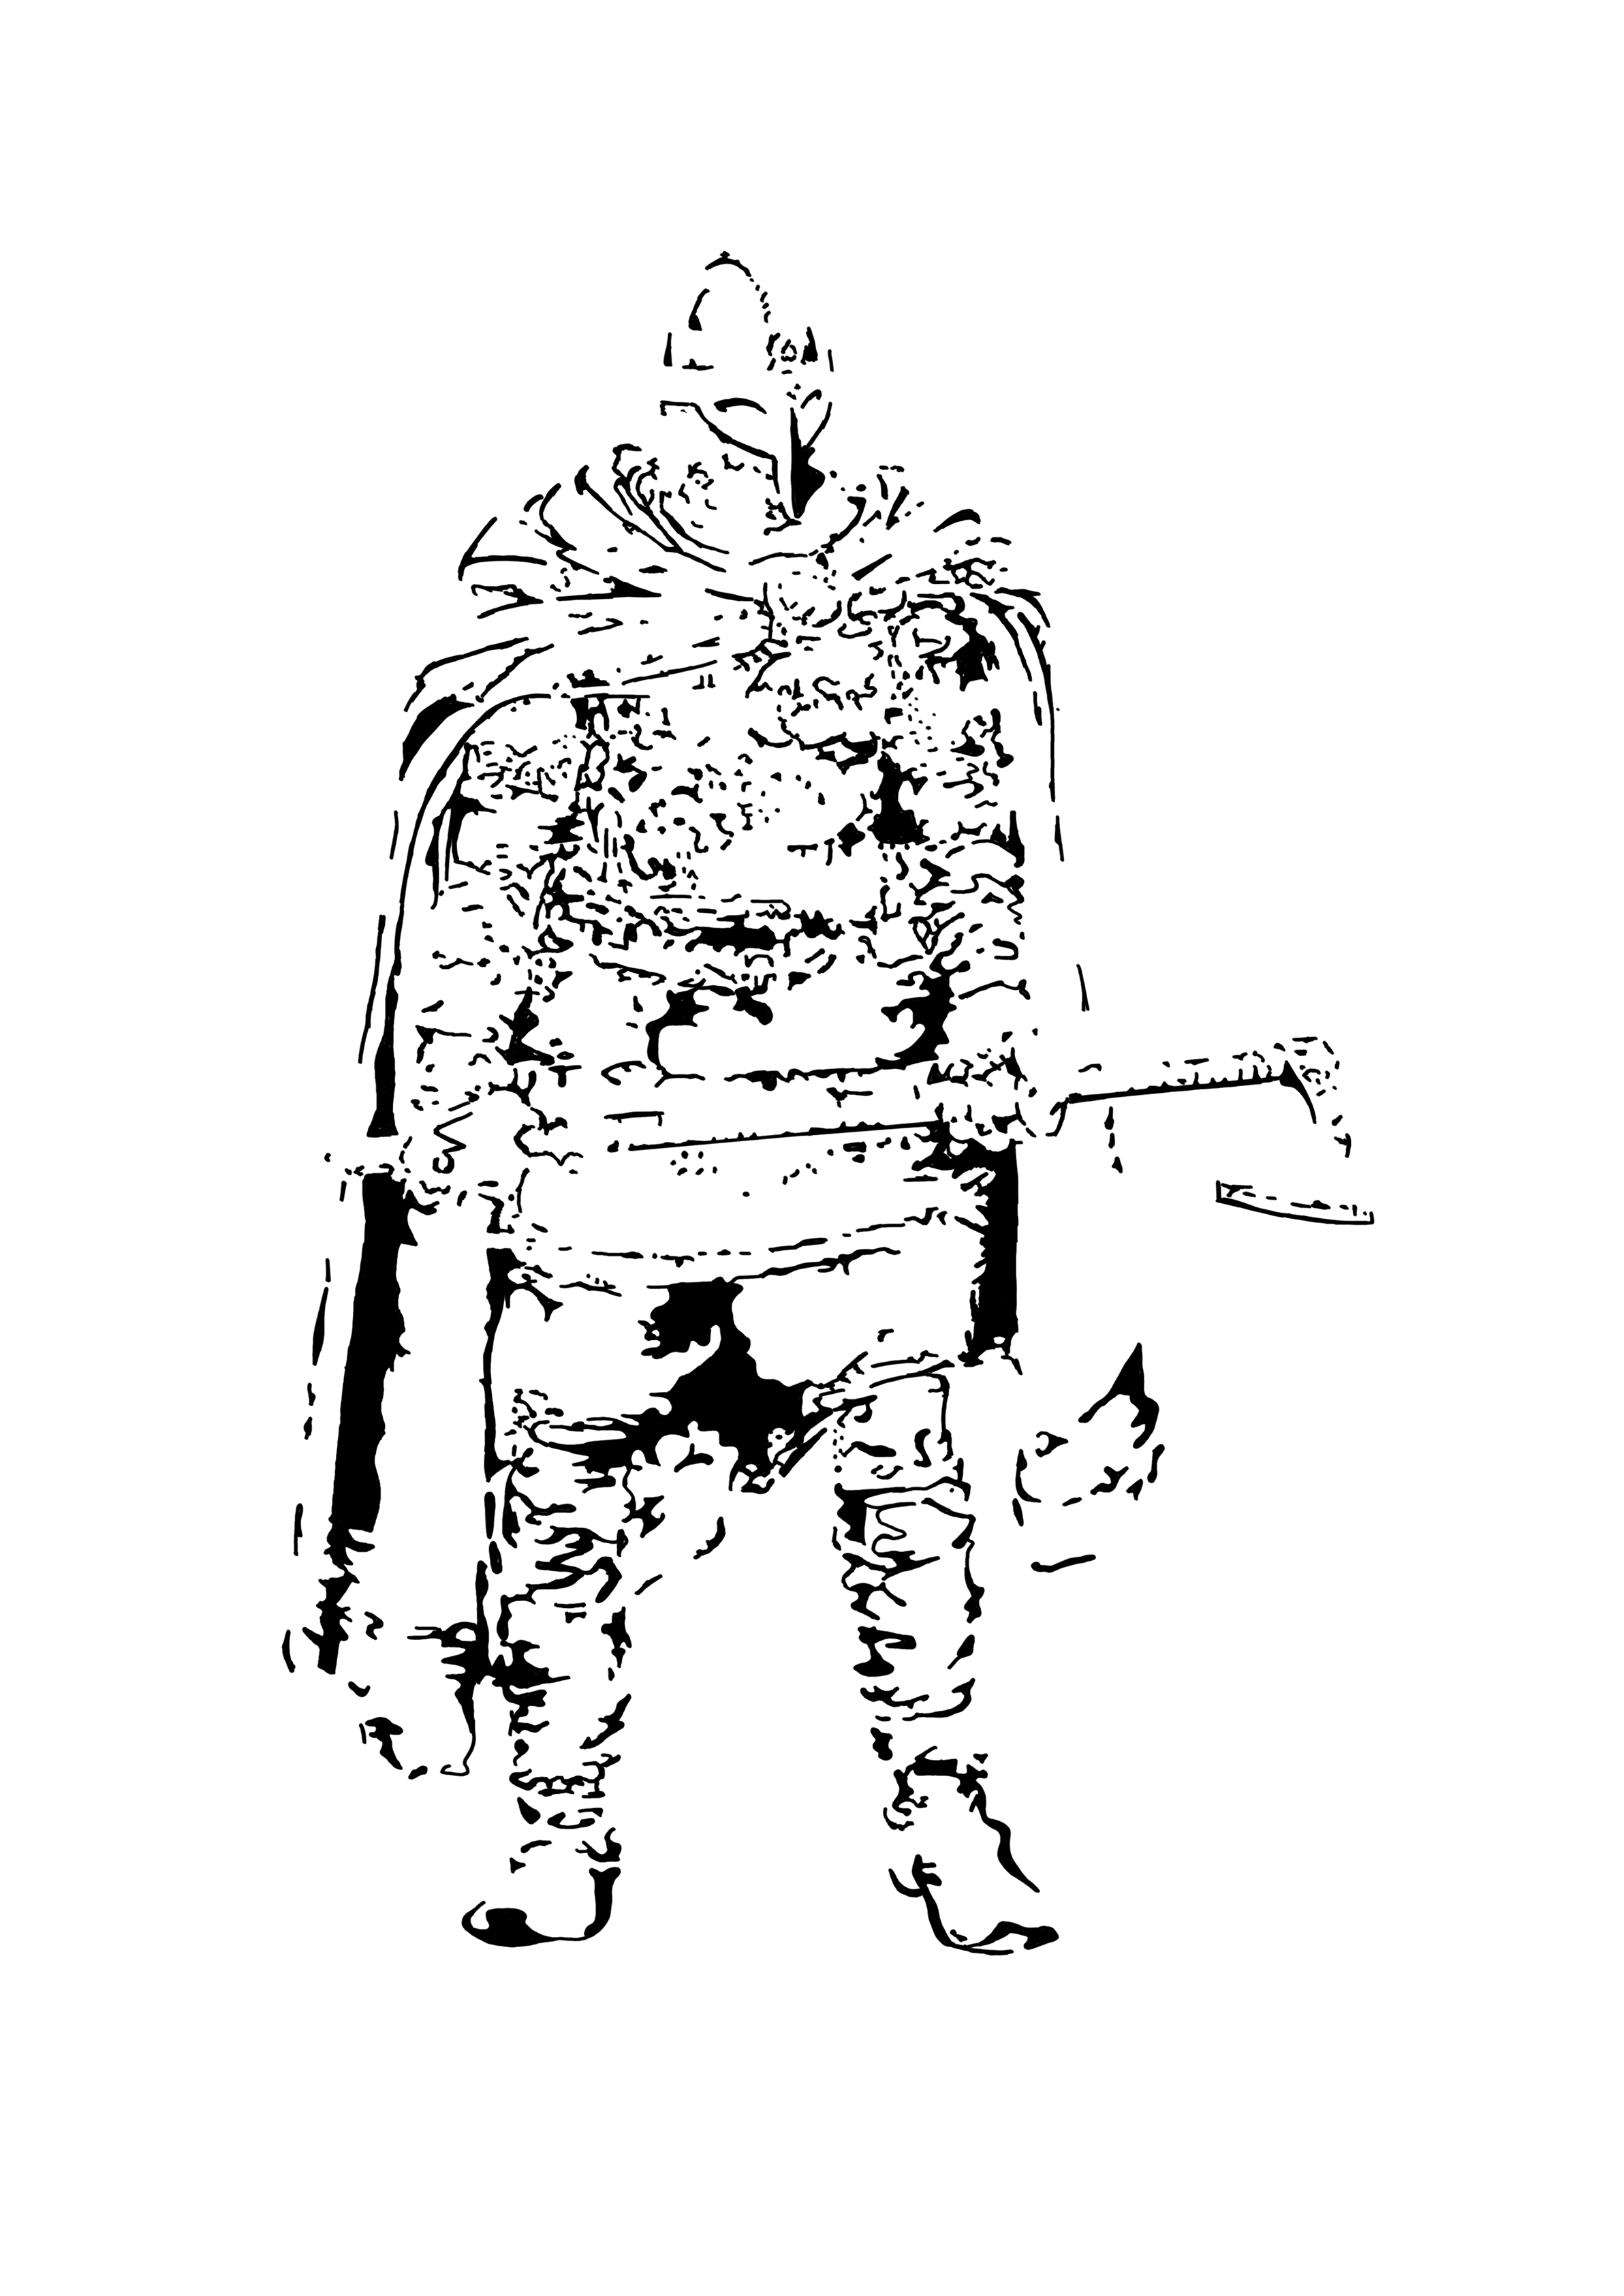 Artist: Baarts Image: Viking warrior in monotone pop art style, using only shading to create the image